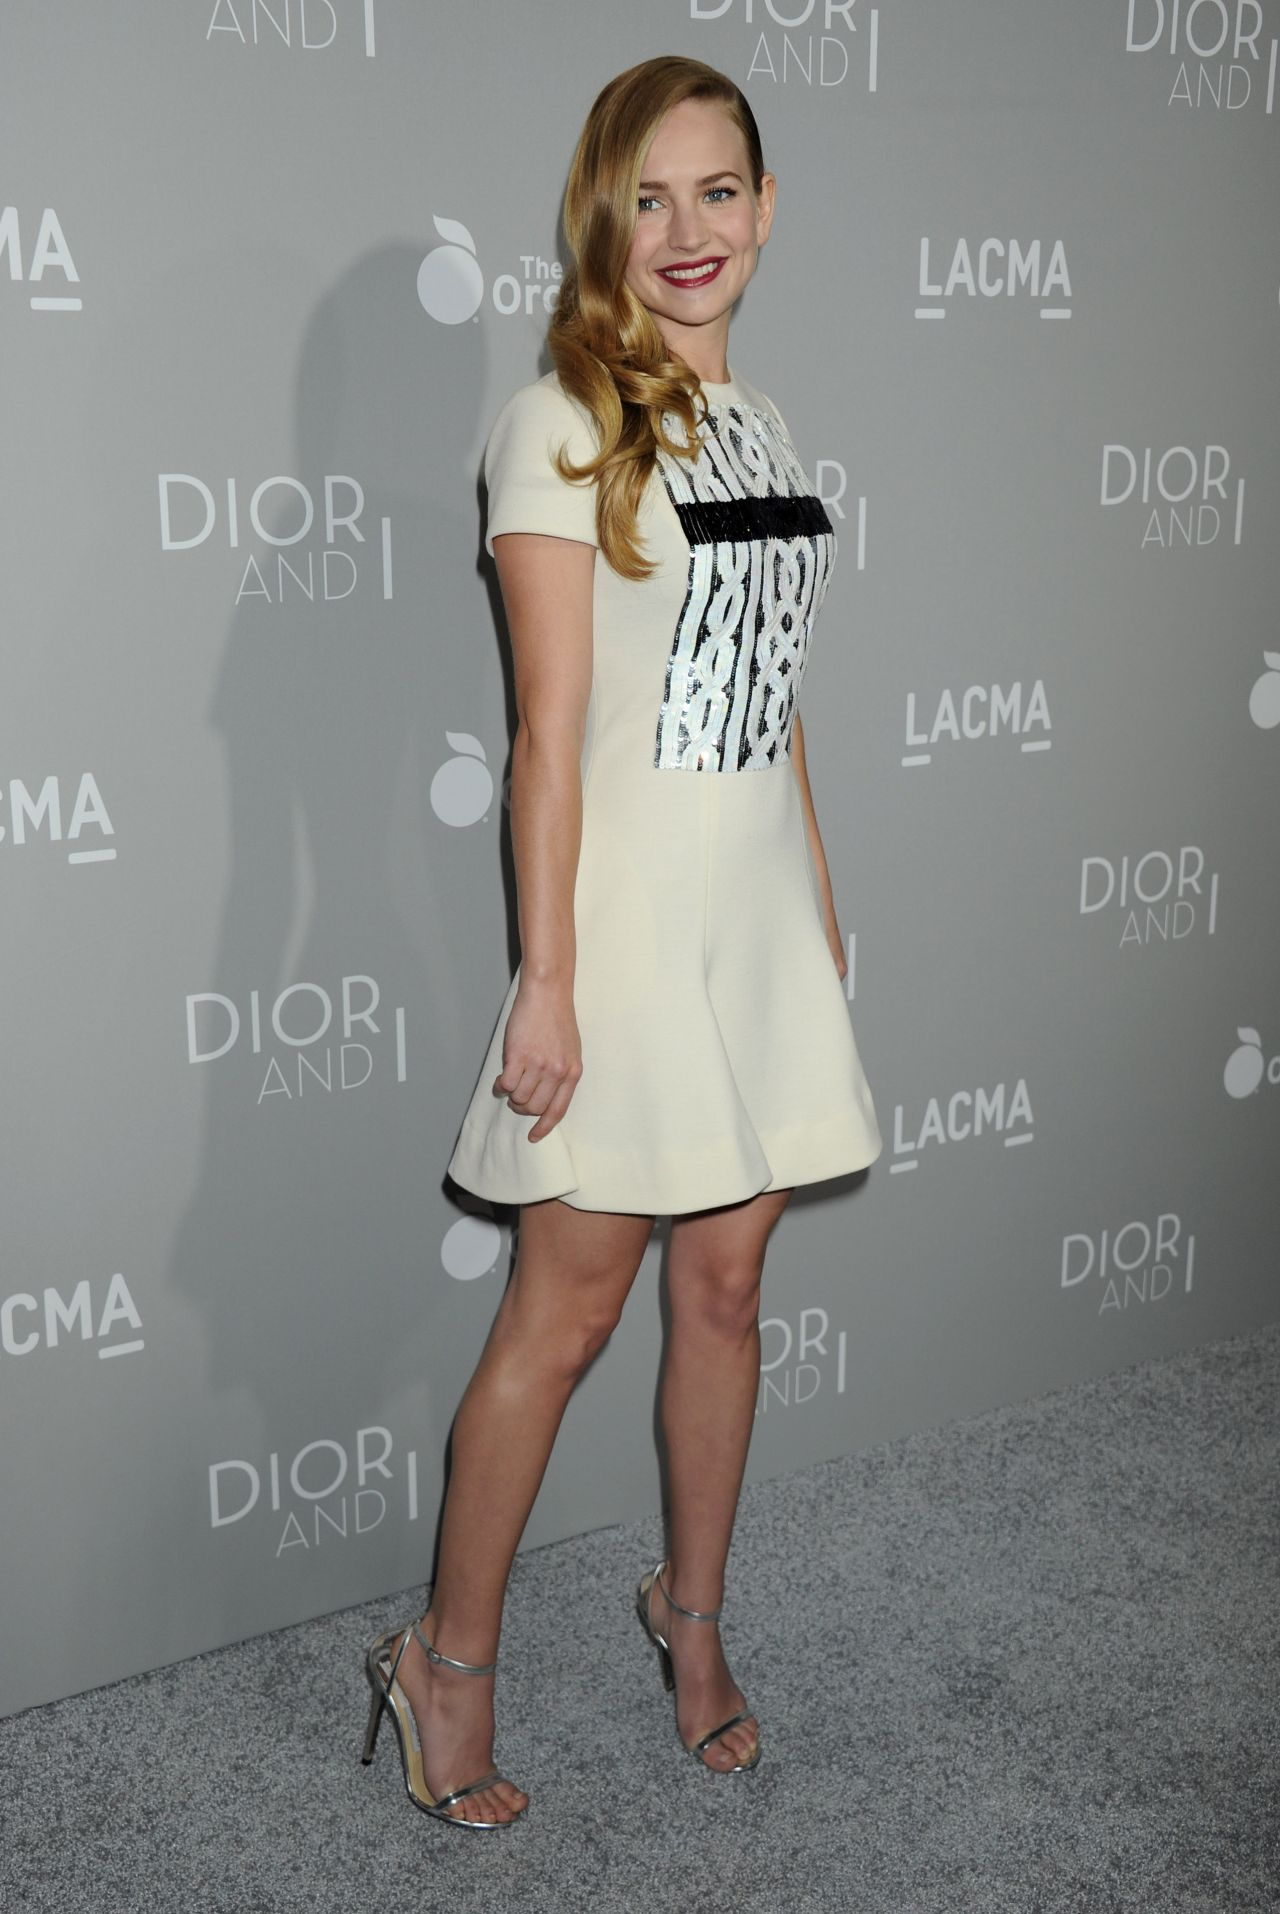 Britt Robertson – Orchard Premiere of Dior and I in Los Angeles